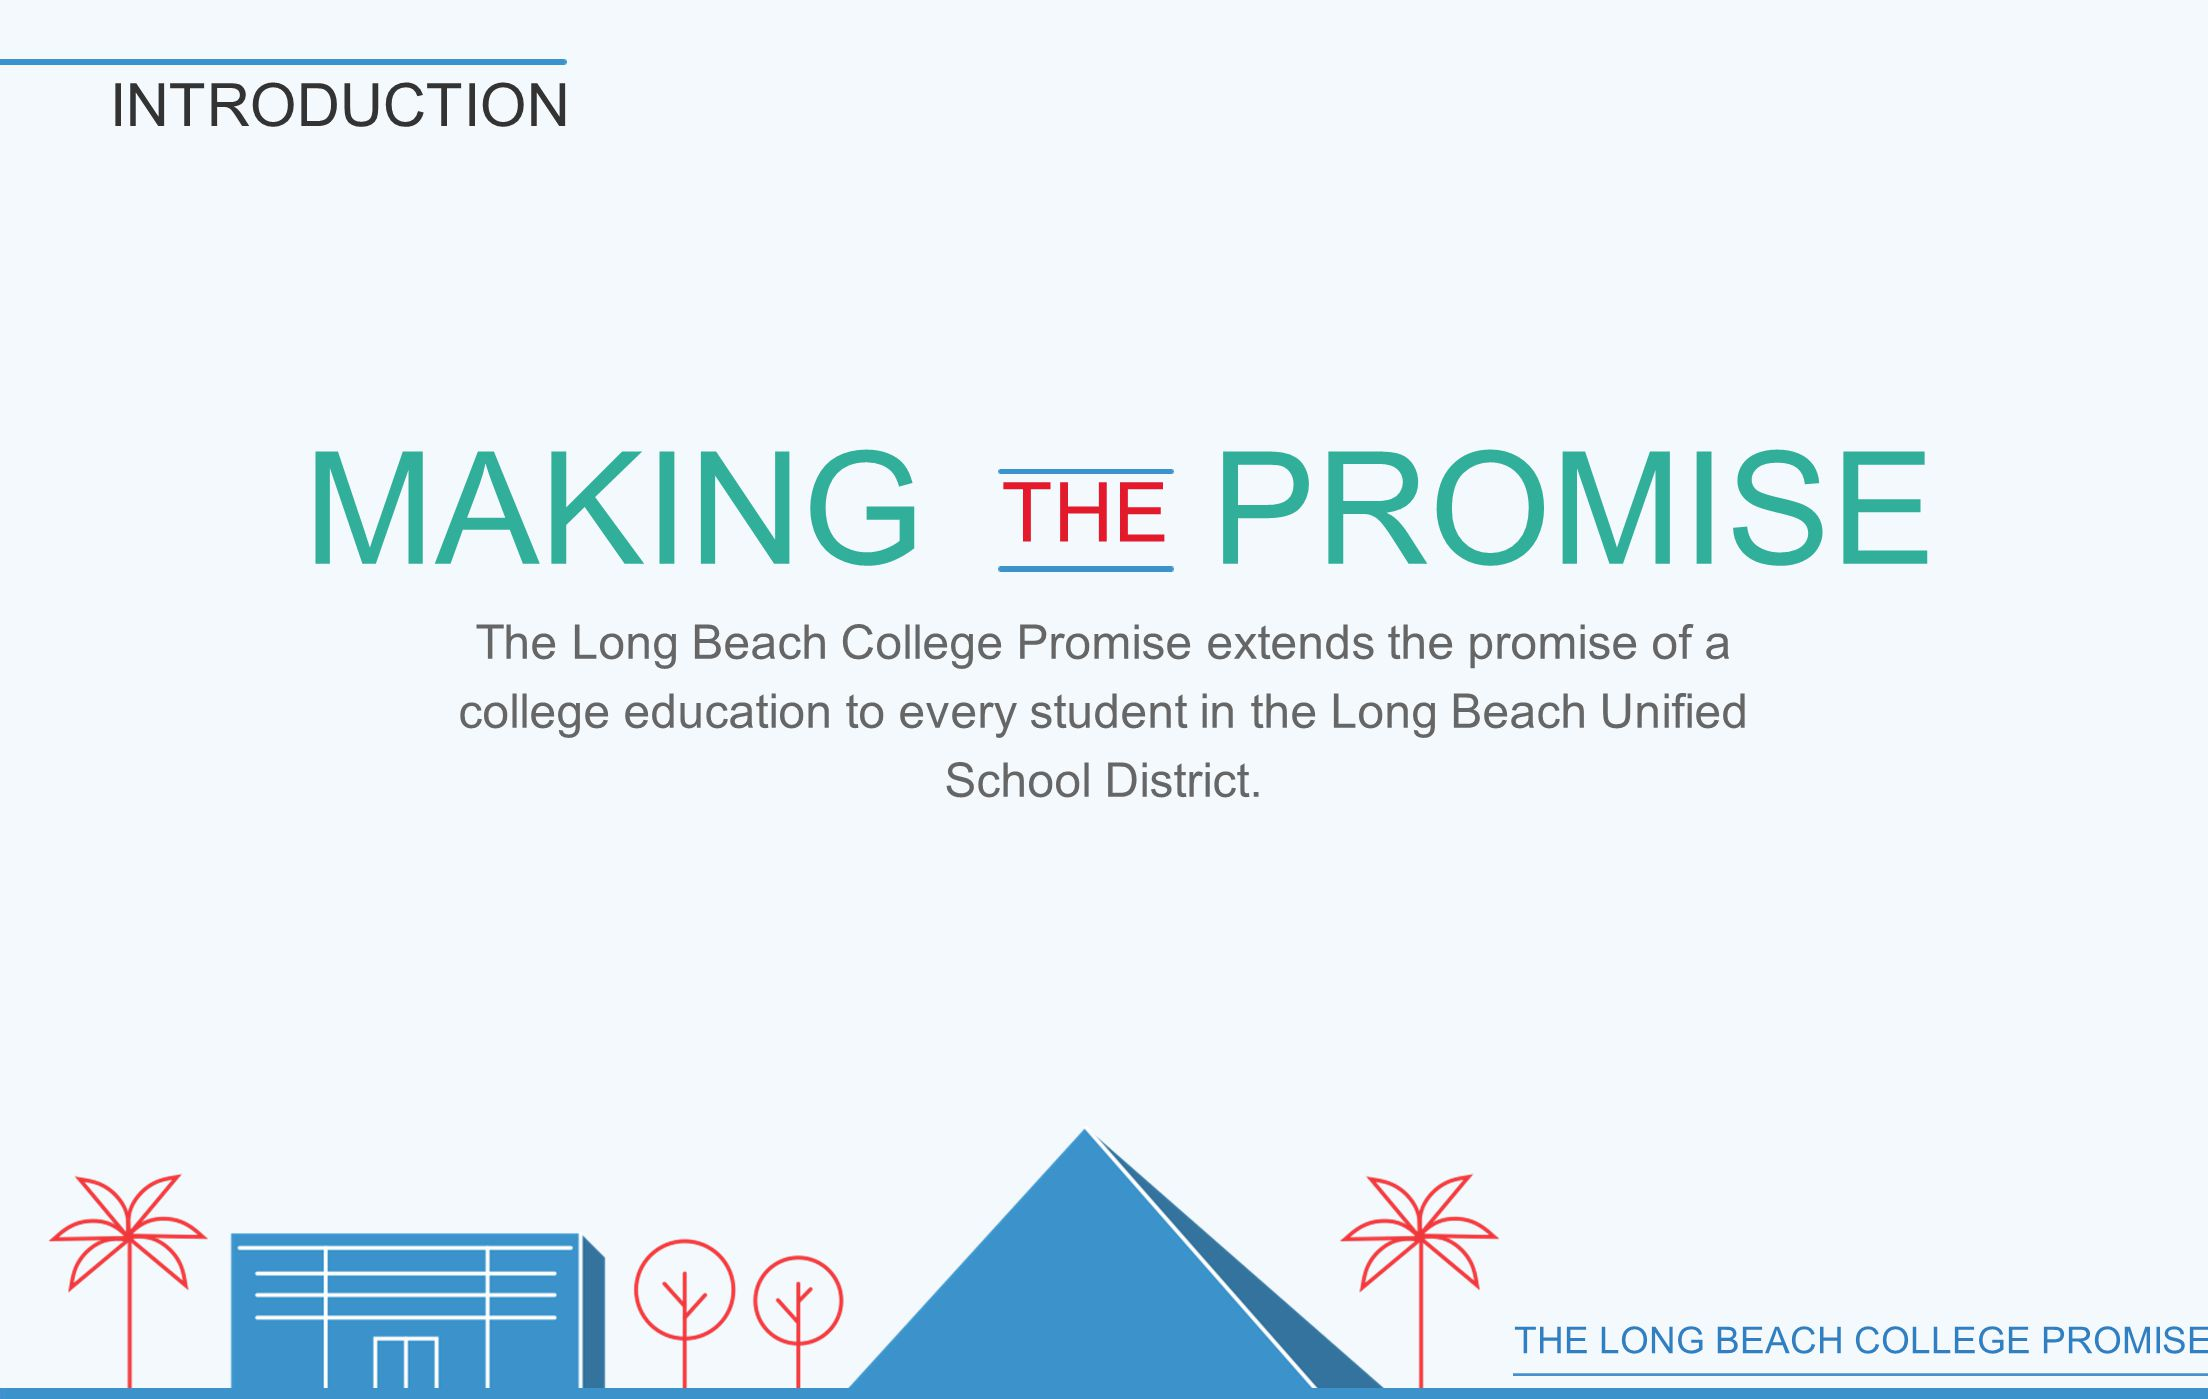 THE LONG BEACH COLLEGE PROMISE INTRODUCTION The Long Beach College Promise extends the promise of a college education to every student in the Long Beach Unified School District.